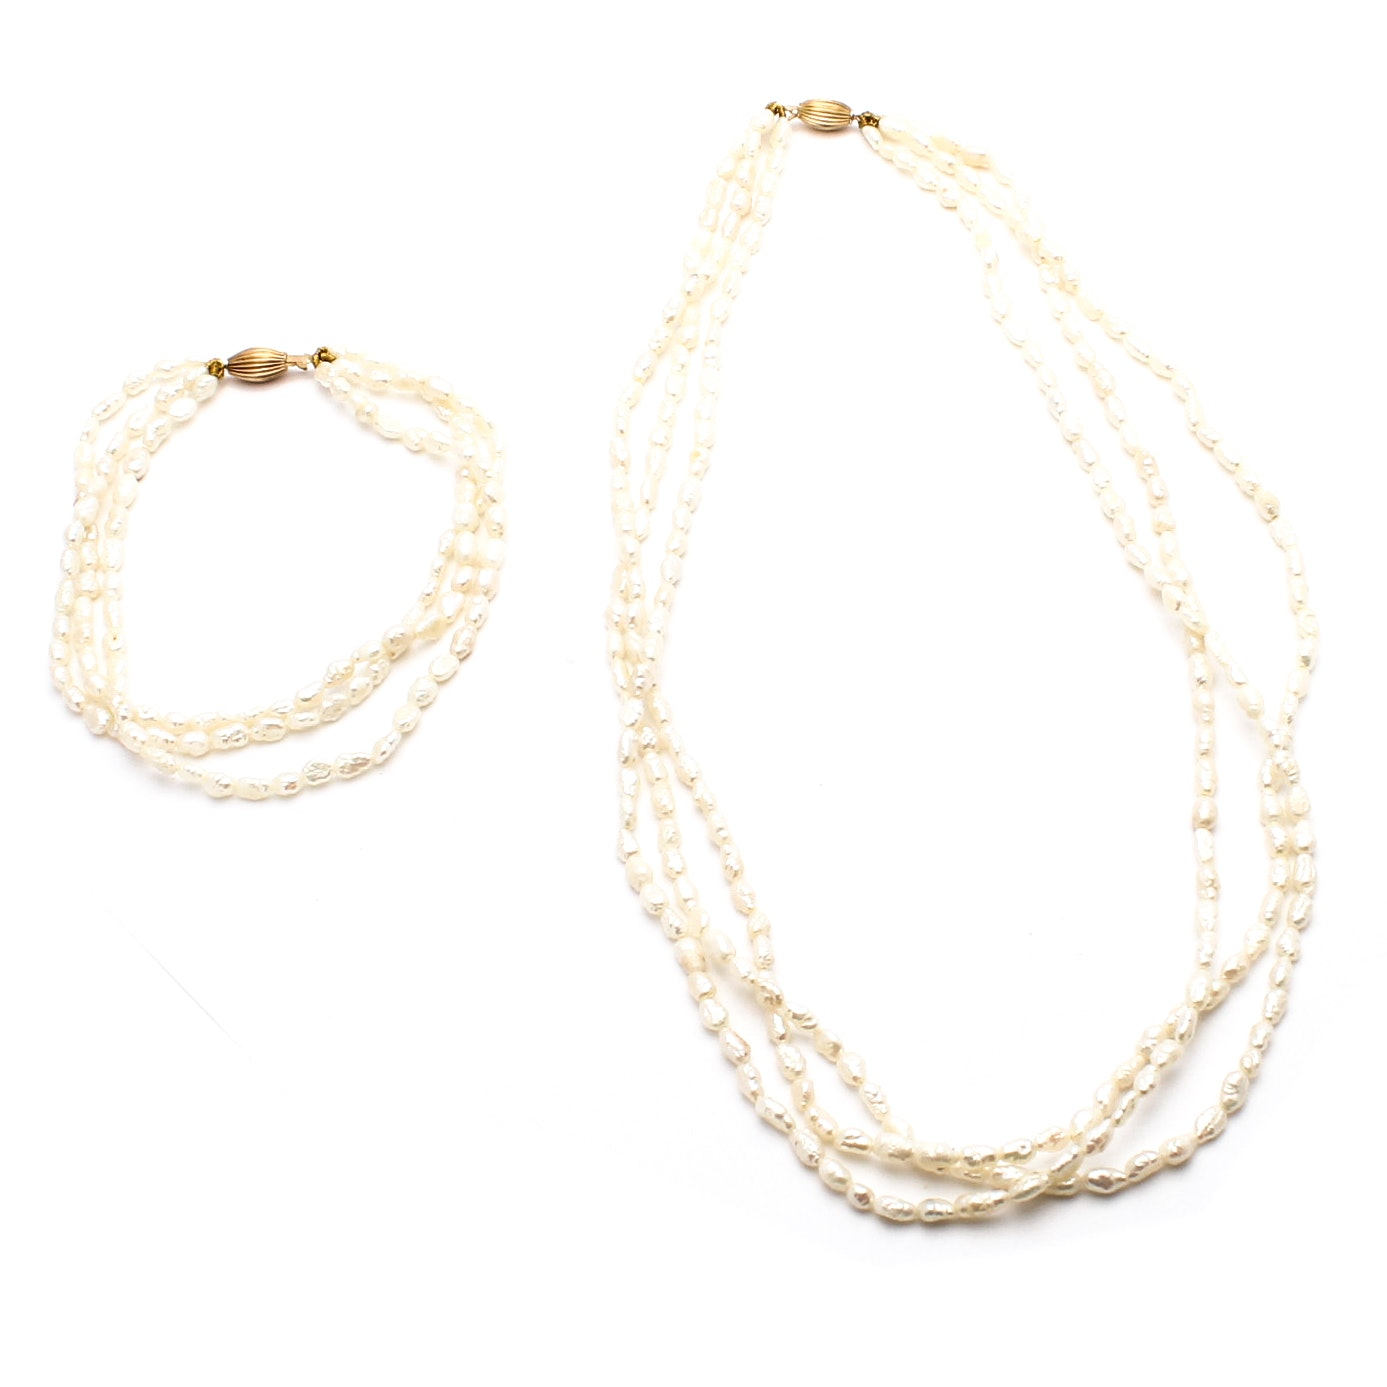 14K Gold and Cultured Freshwater Pearl Necklace and Bracelet